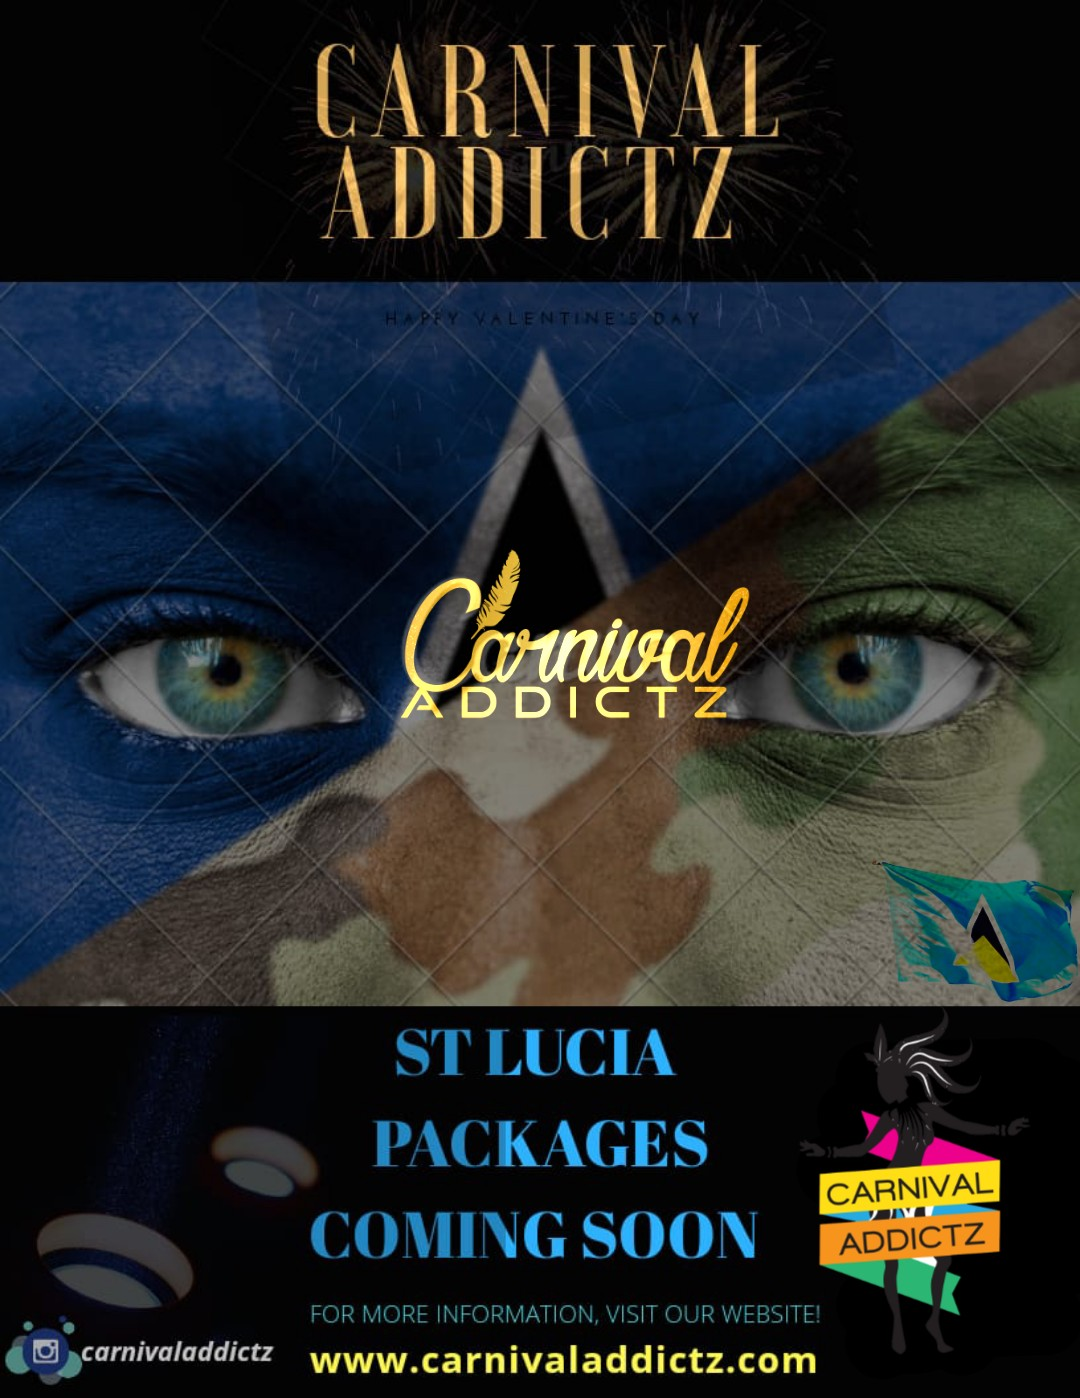 Stay tuned for information on our St. Lucia Packages…..